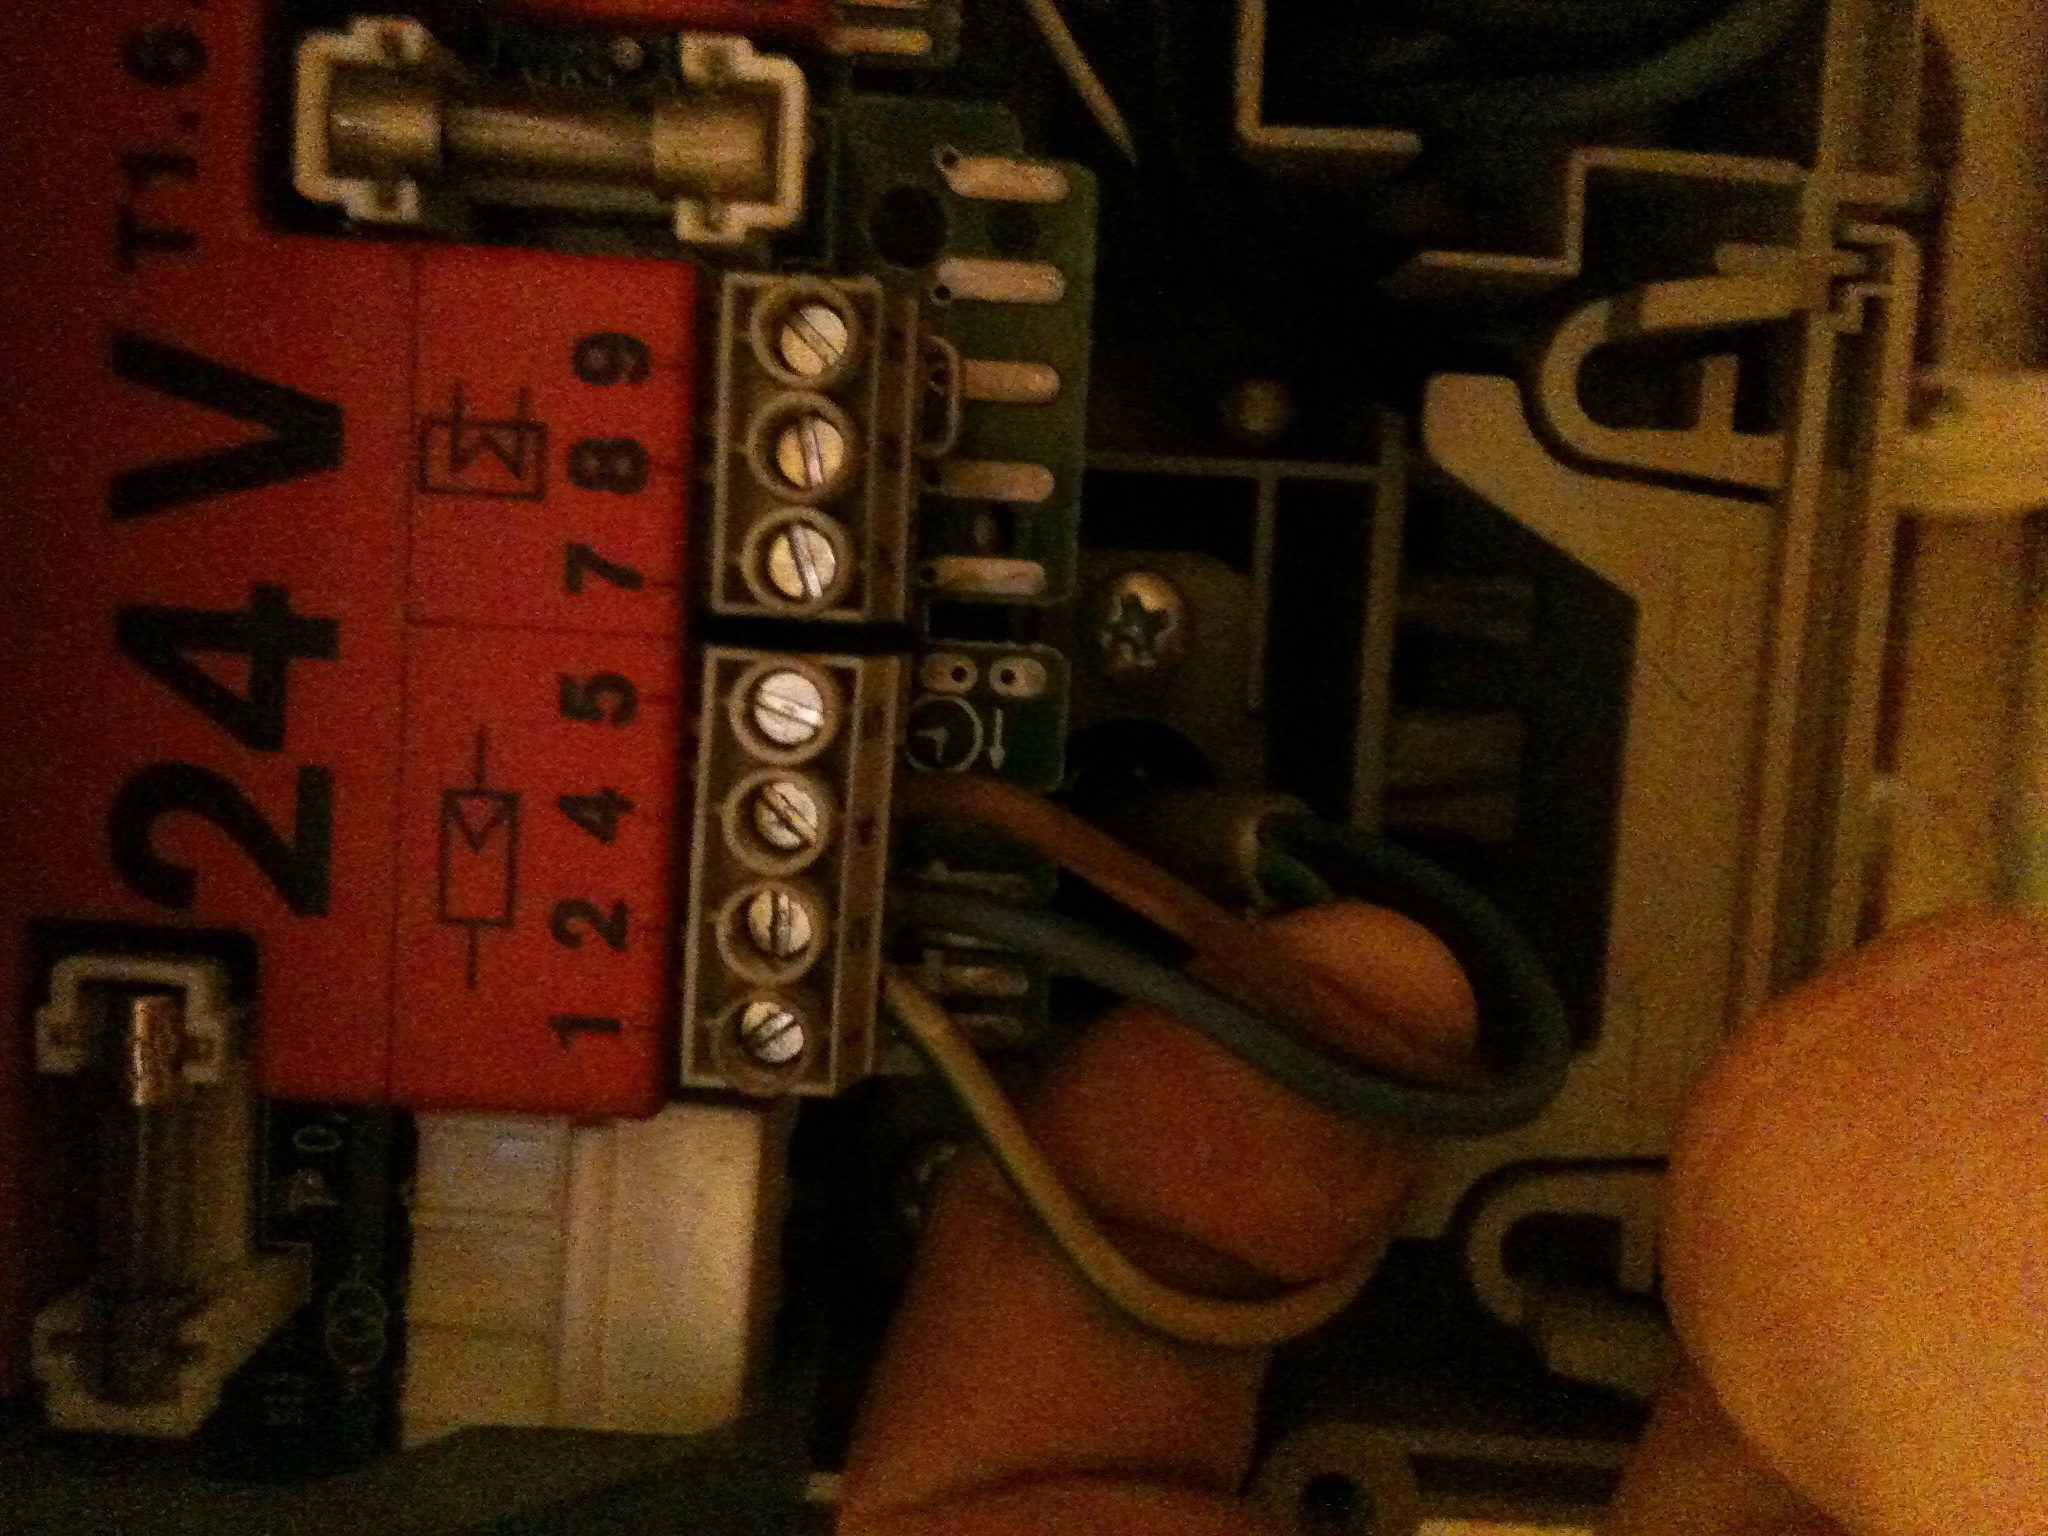 - Probleme thermostat chaudiere ...